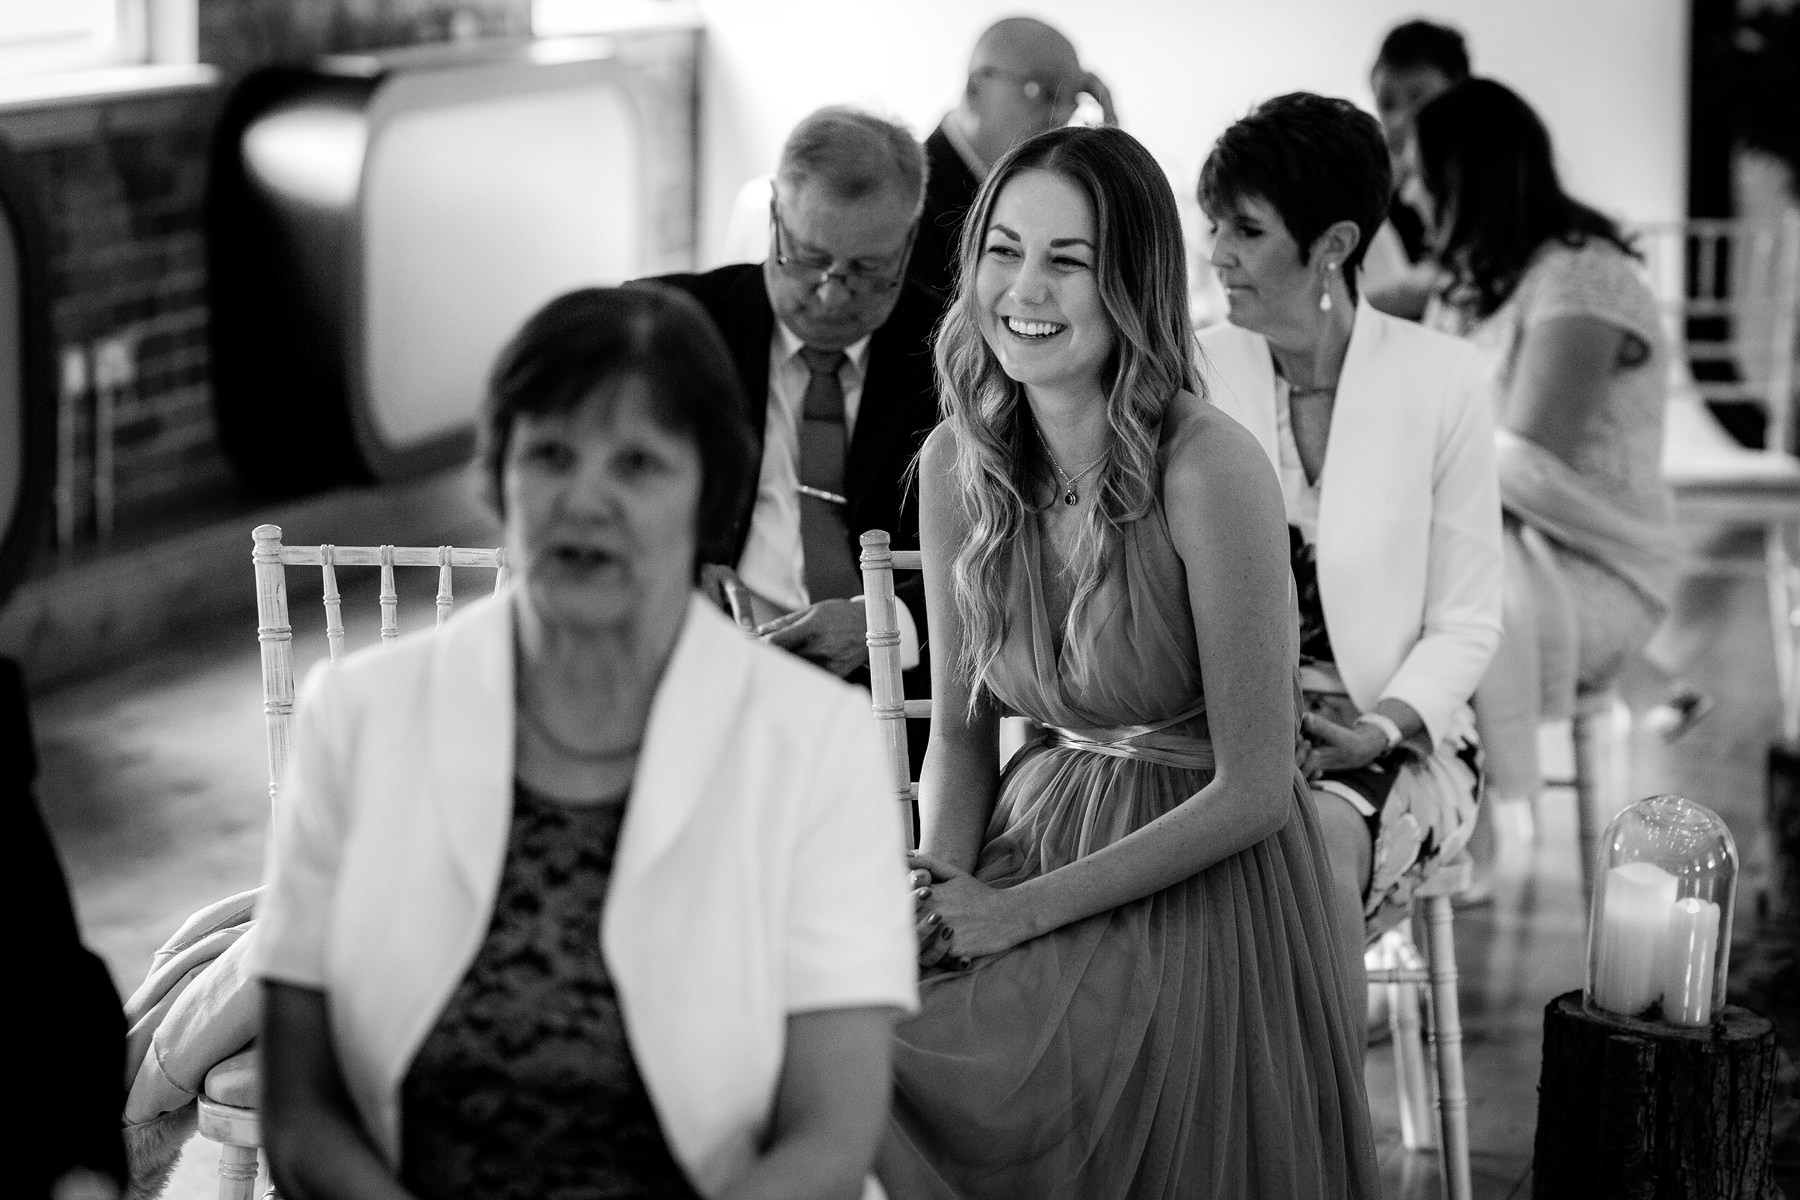 guests smiling before the service